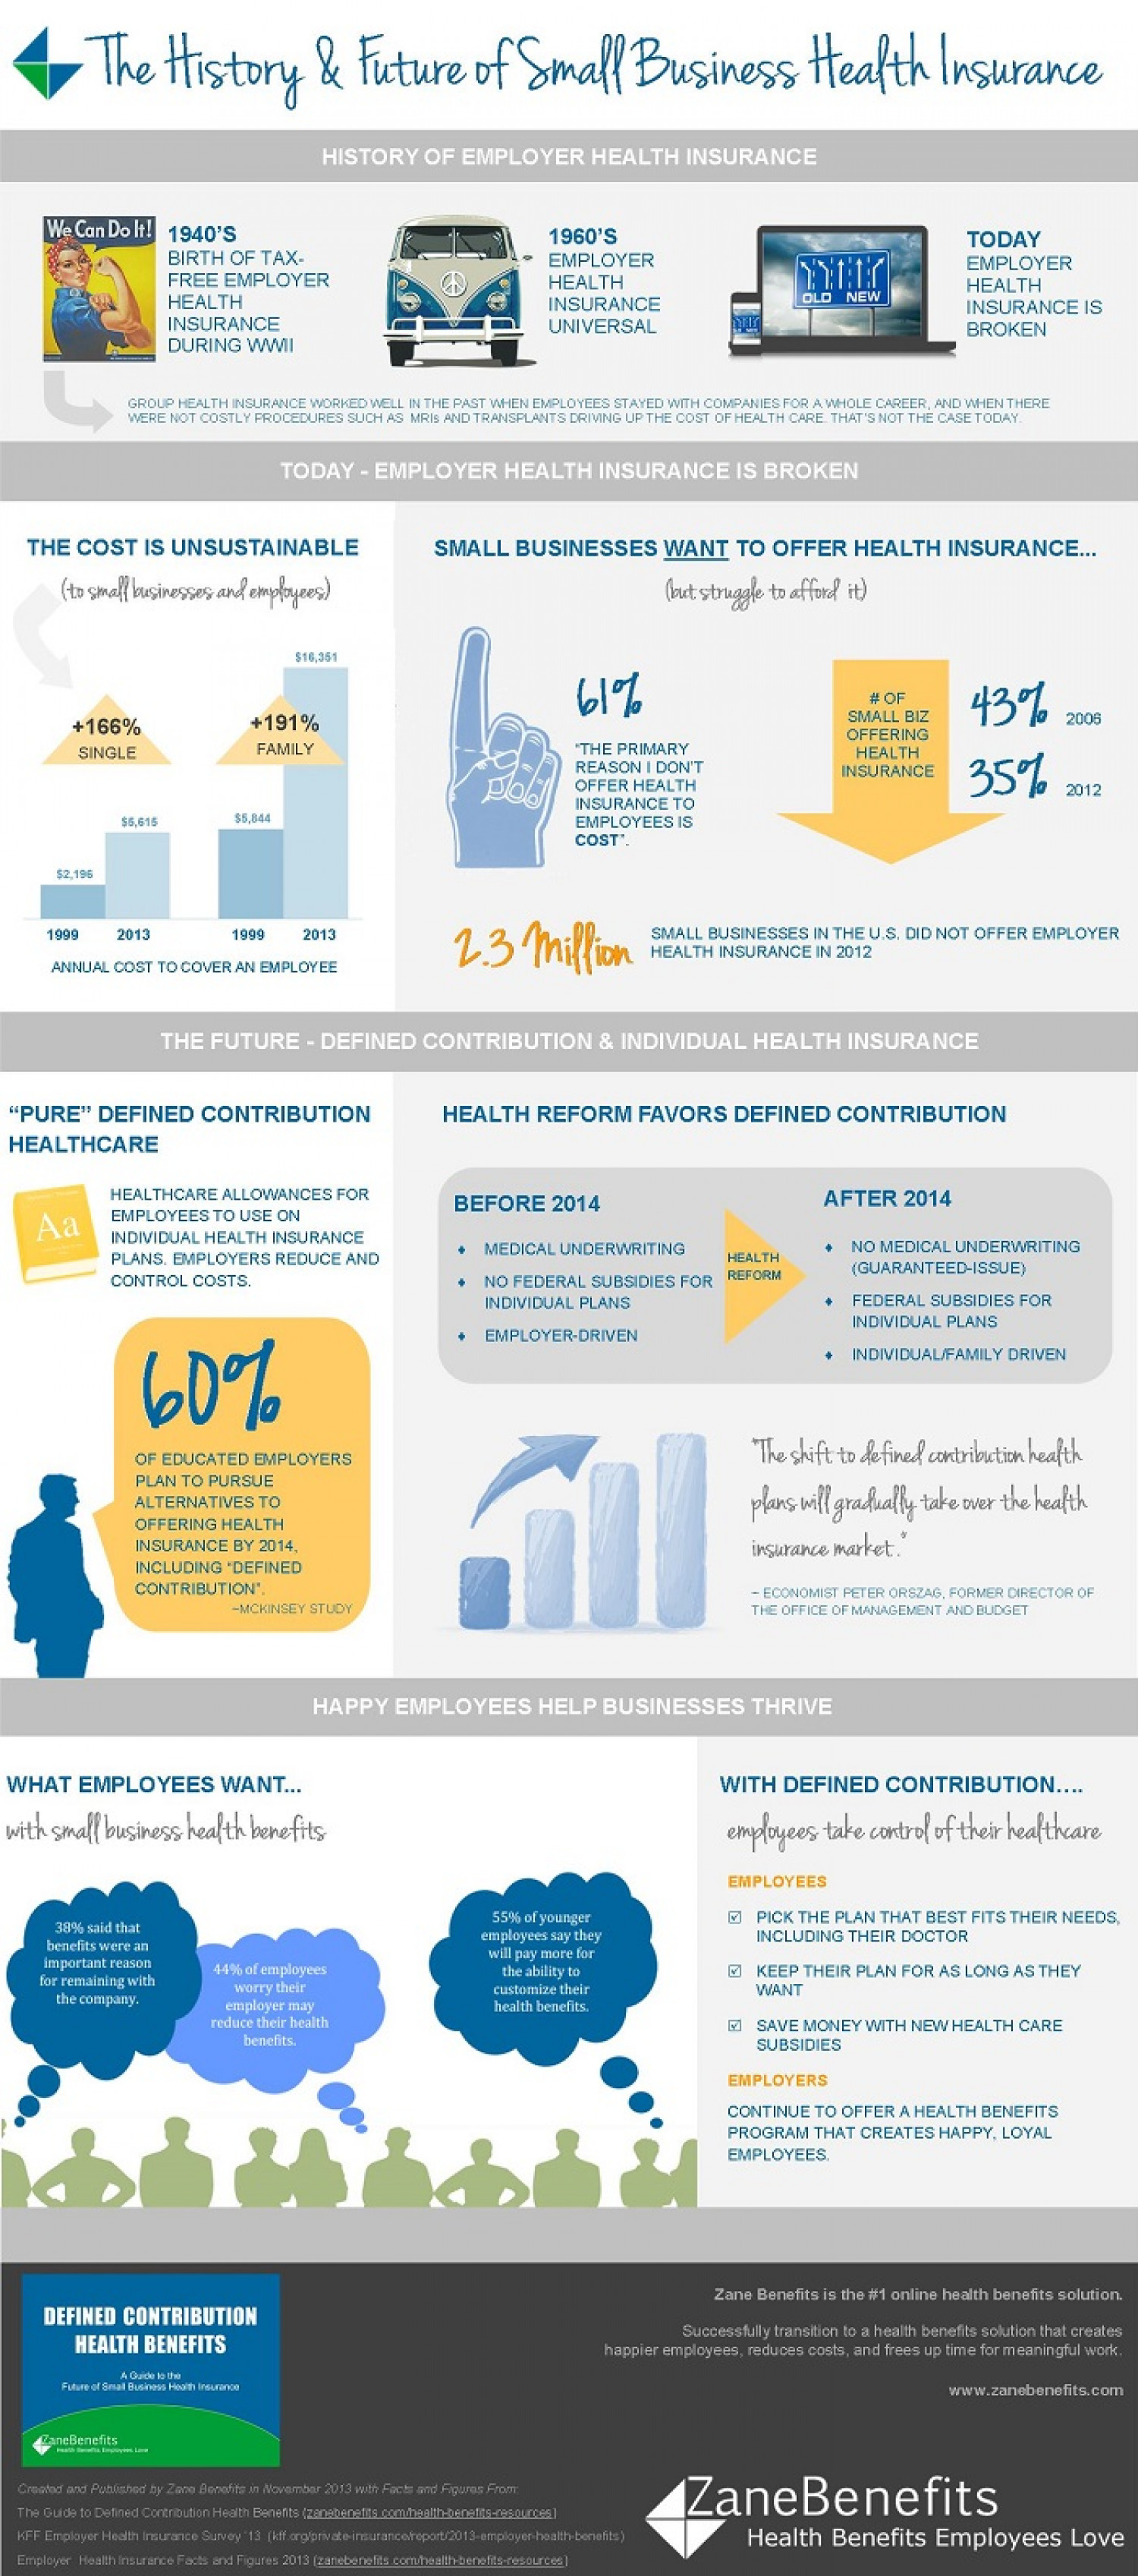 The History & Future of Small Business Health Insurance Infographic